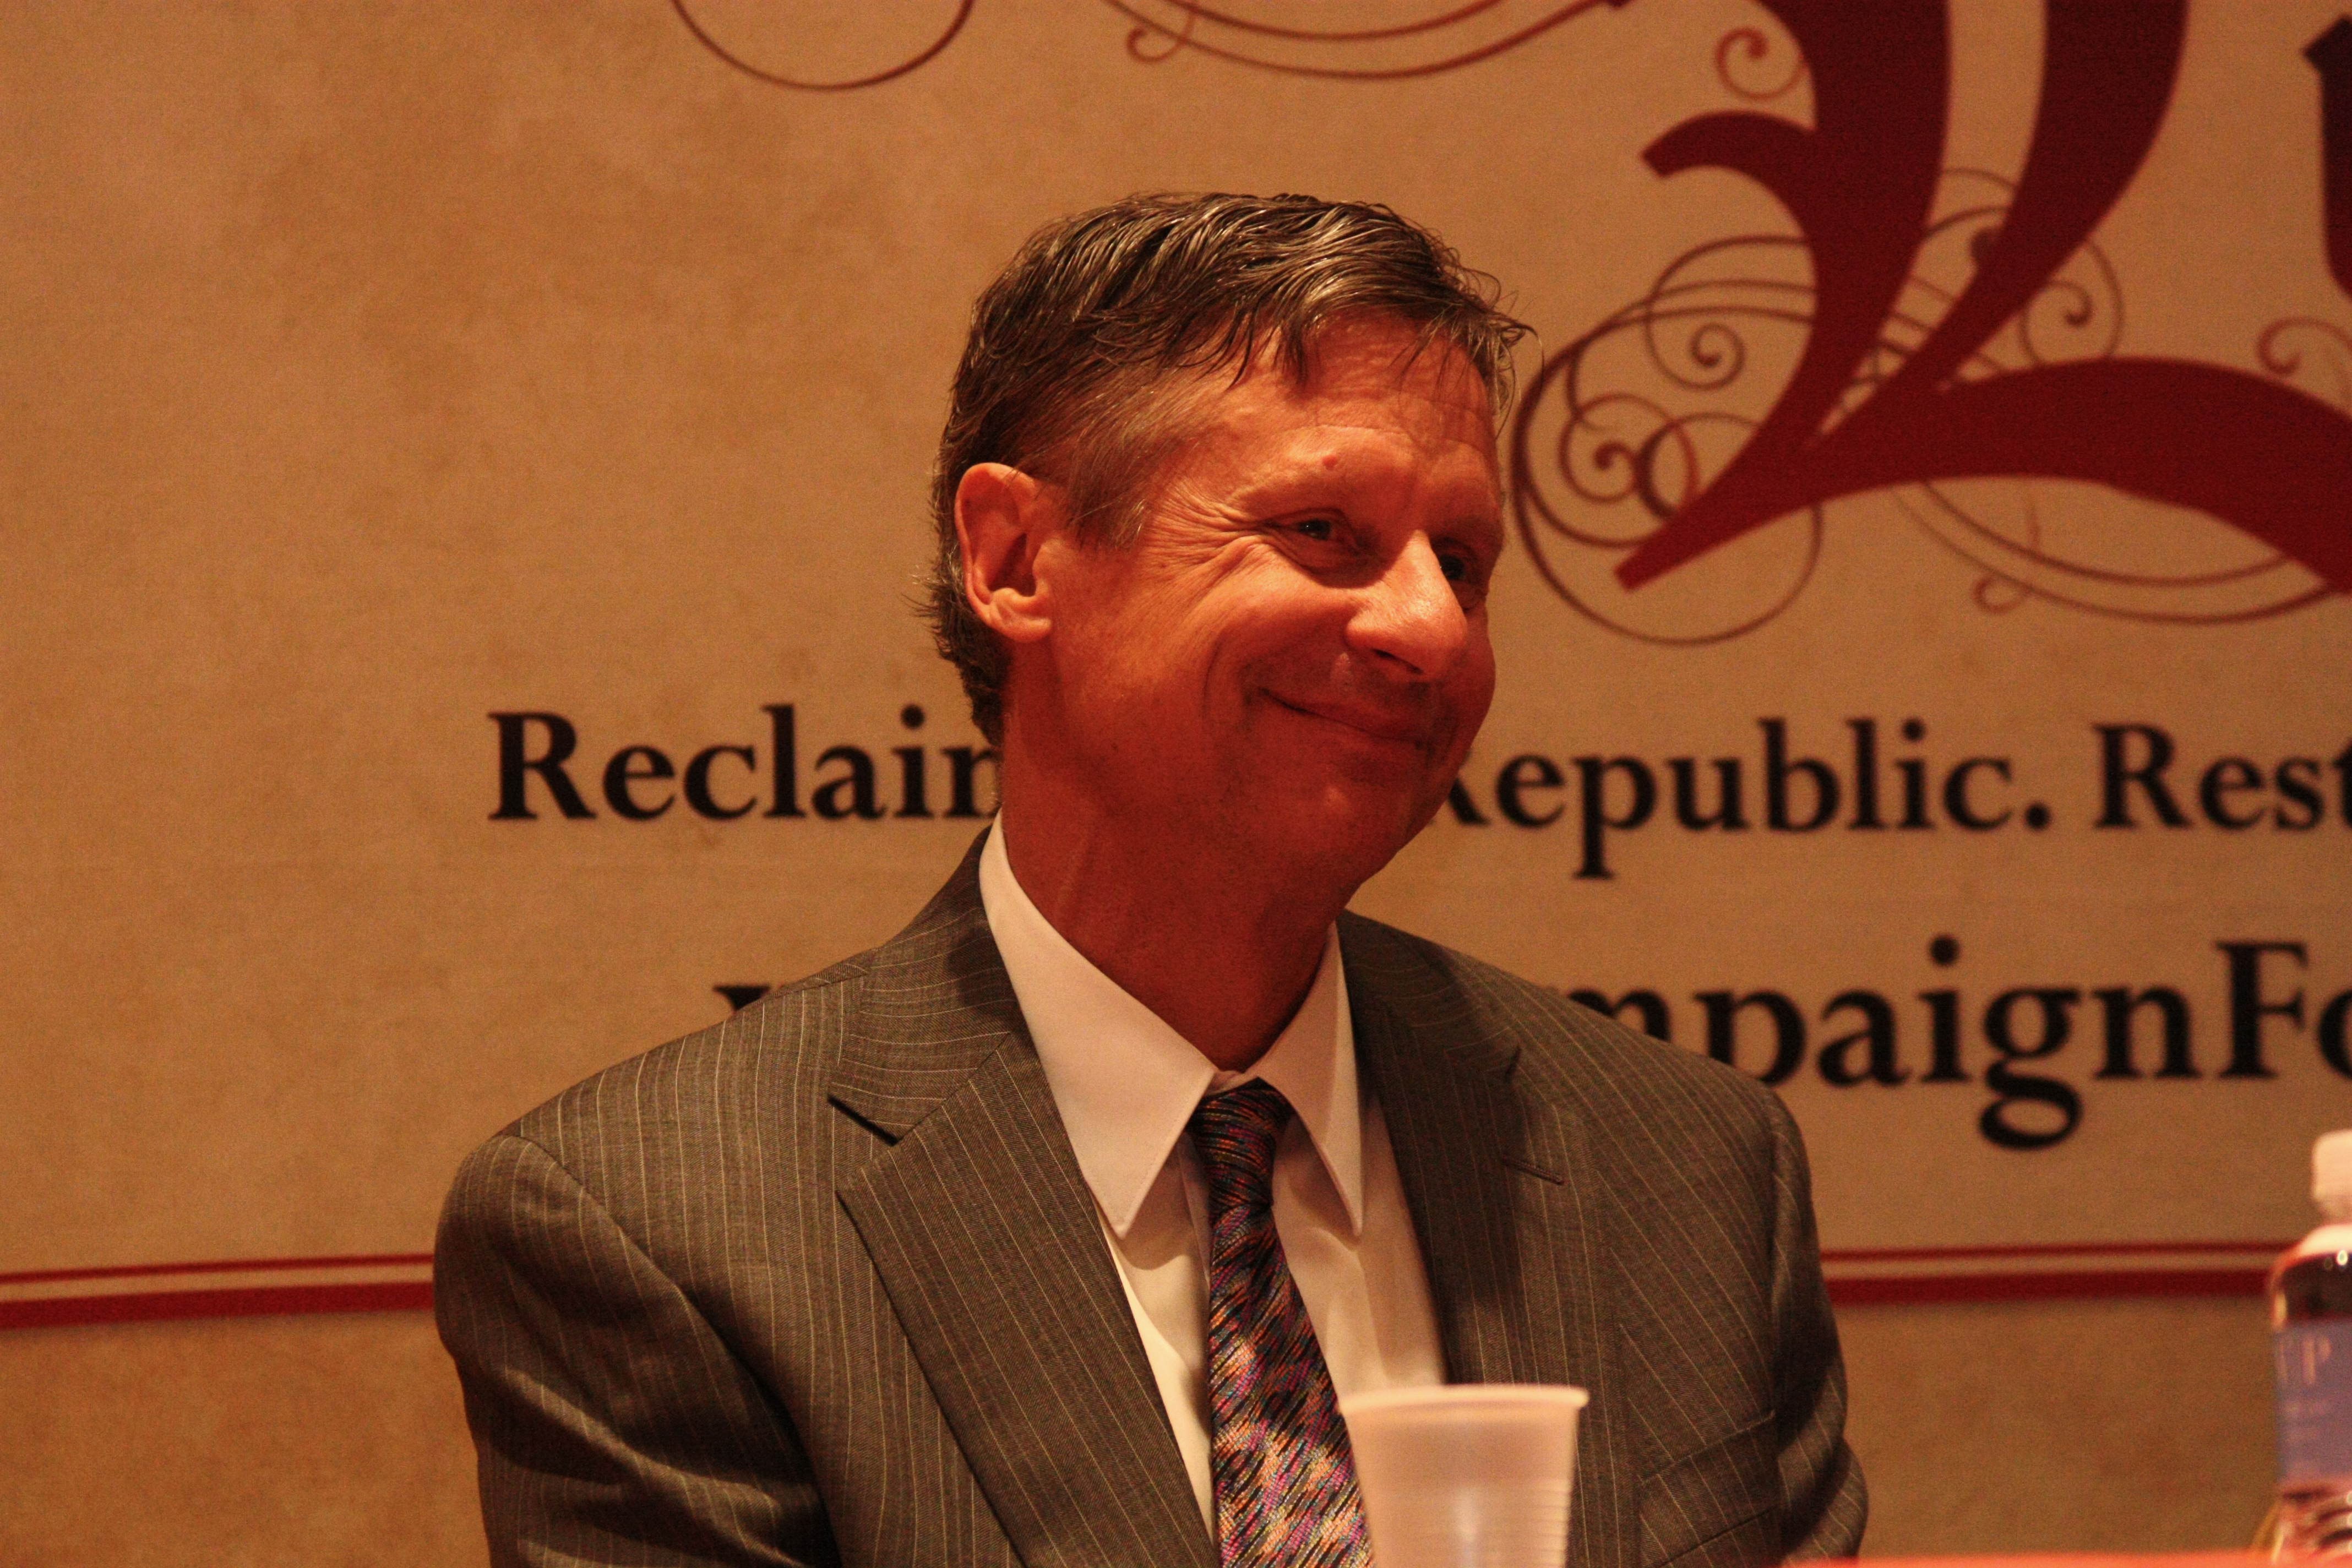 Gary Johnson at Campaign for Liberty event